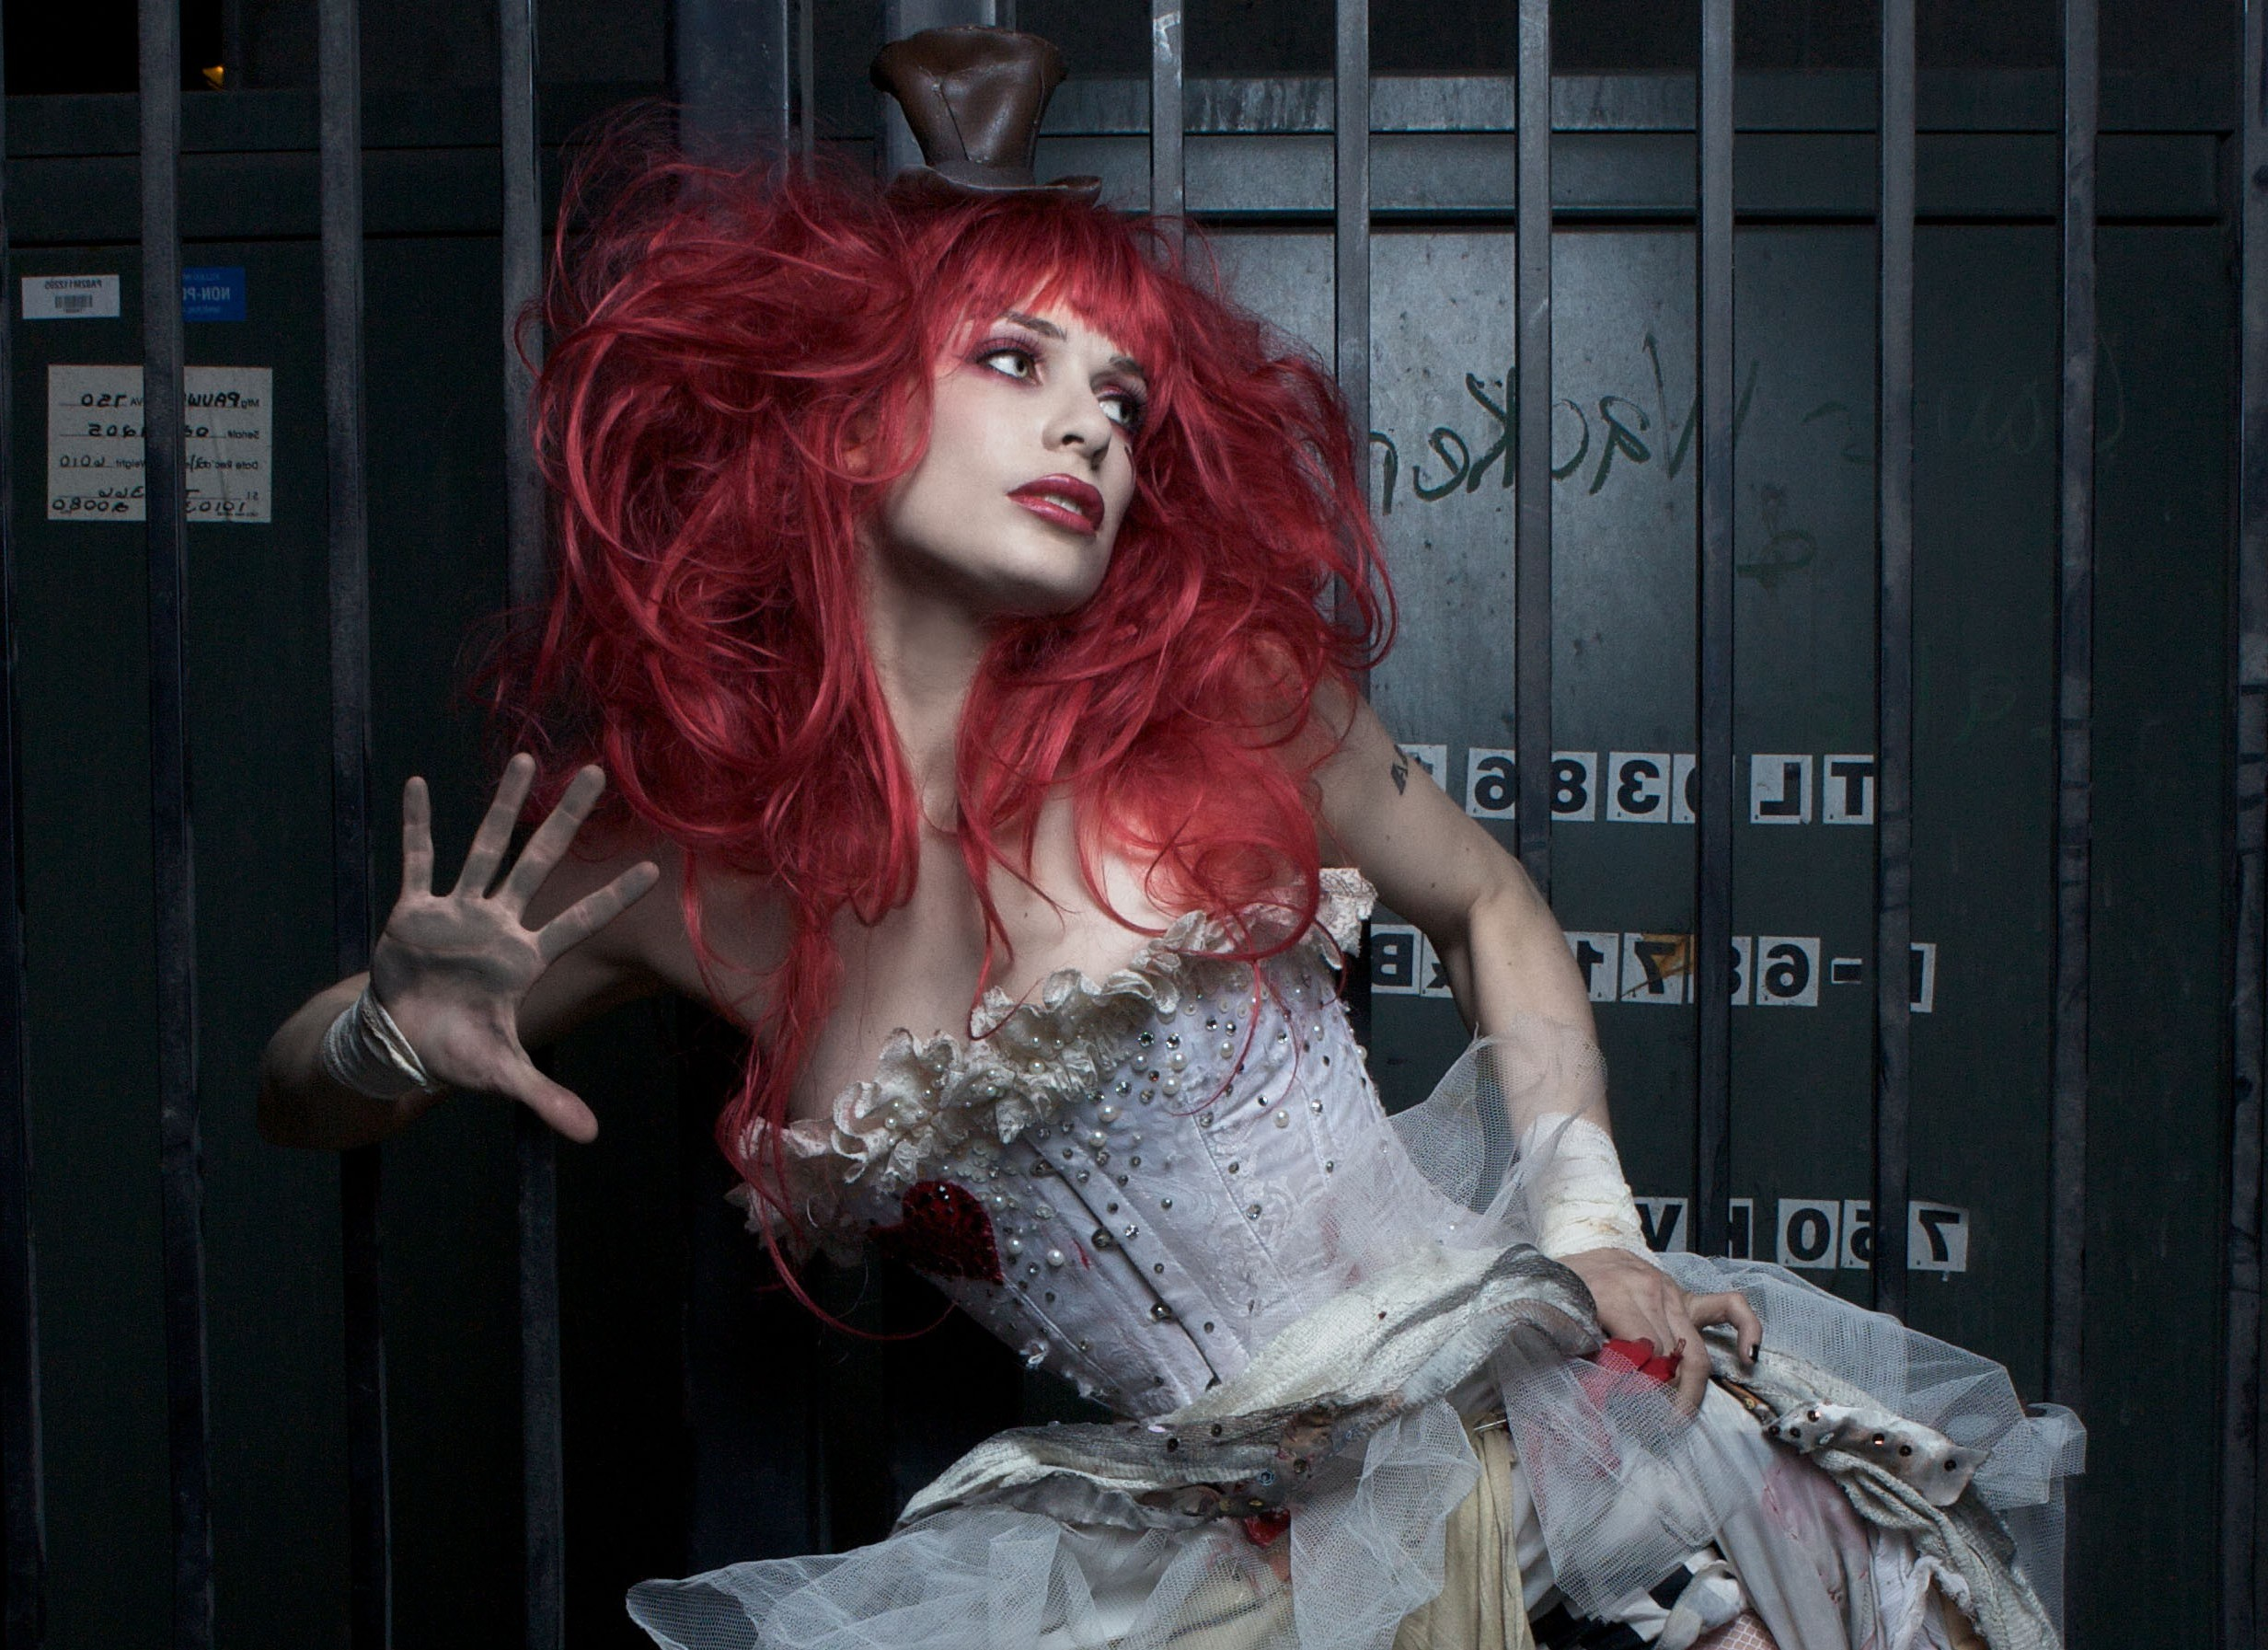 Emilie Autumn Liddell music singer songwriter poet violinist Victorian industrial glam women females girls babes sexy sensual redhead pale musician tattoo style face eyes lips